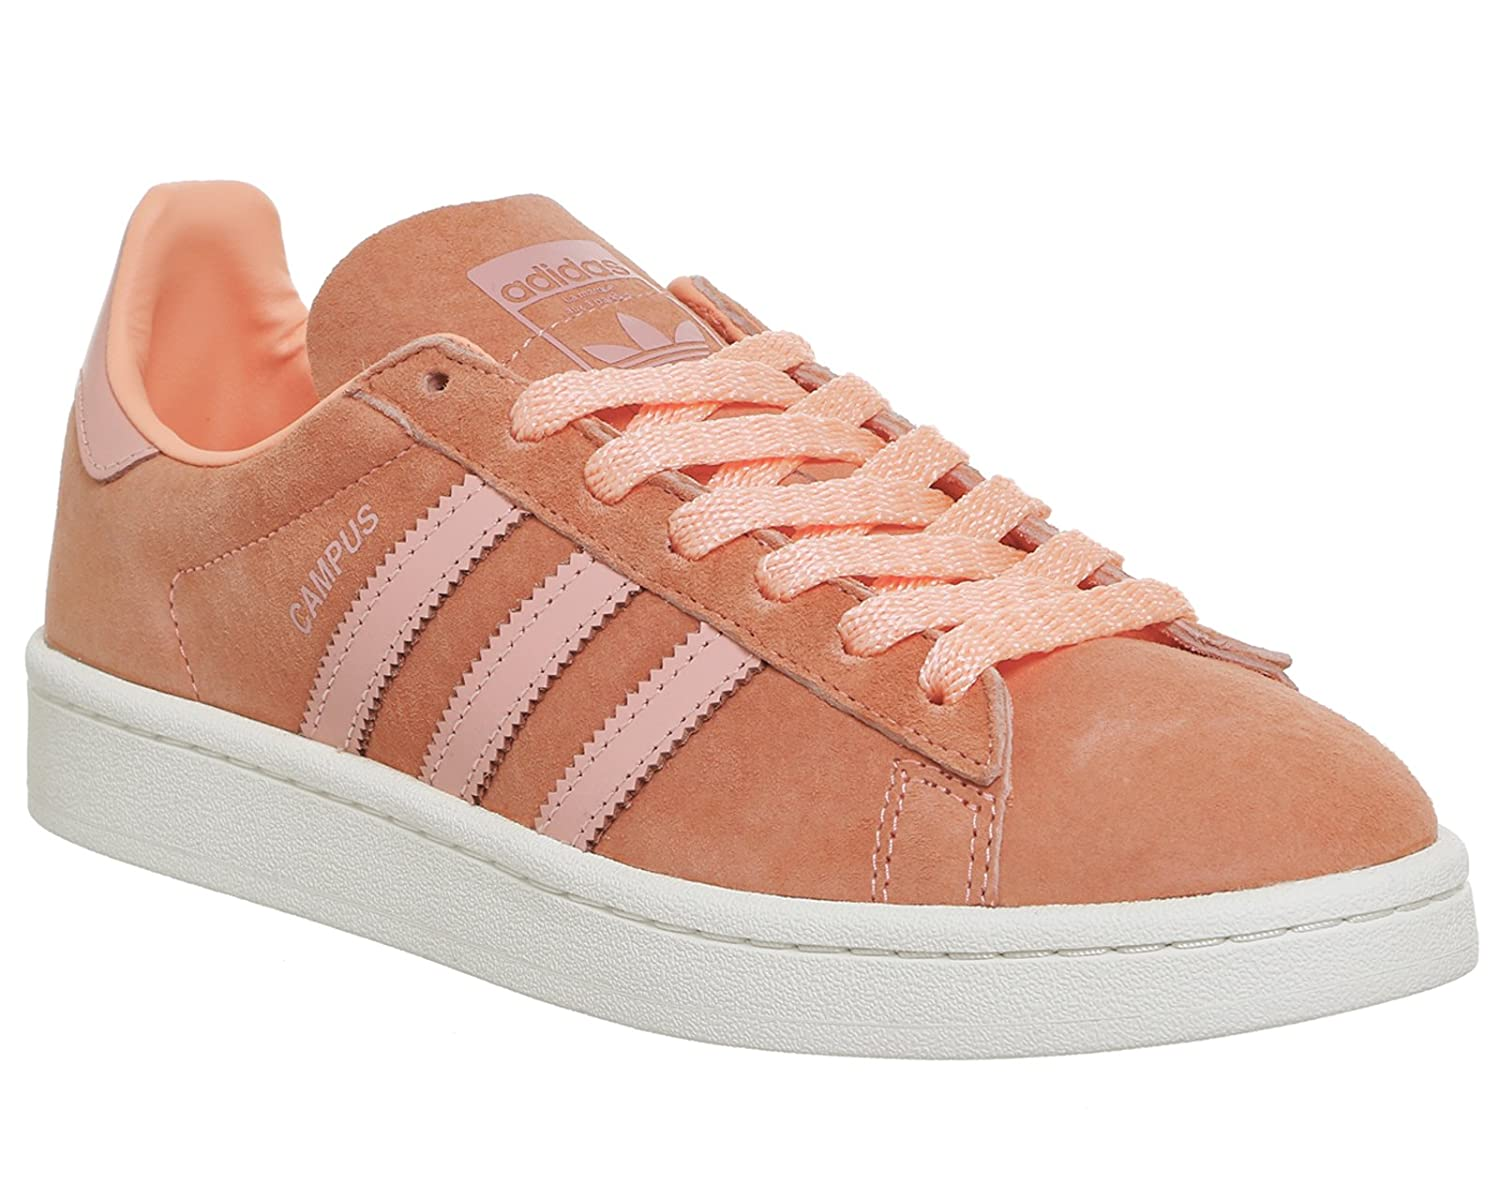 Man's/Woman's adidas Women''s Campus Trainers Adequate supply supply supply and timely delivery excellent Comfortable and natural 32f0c7